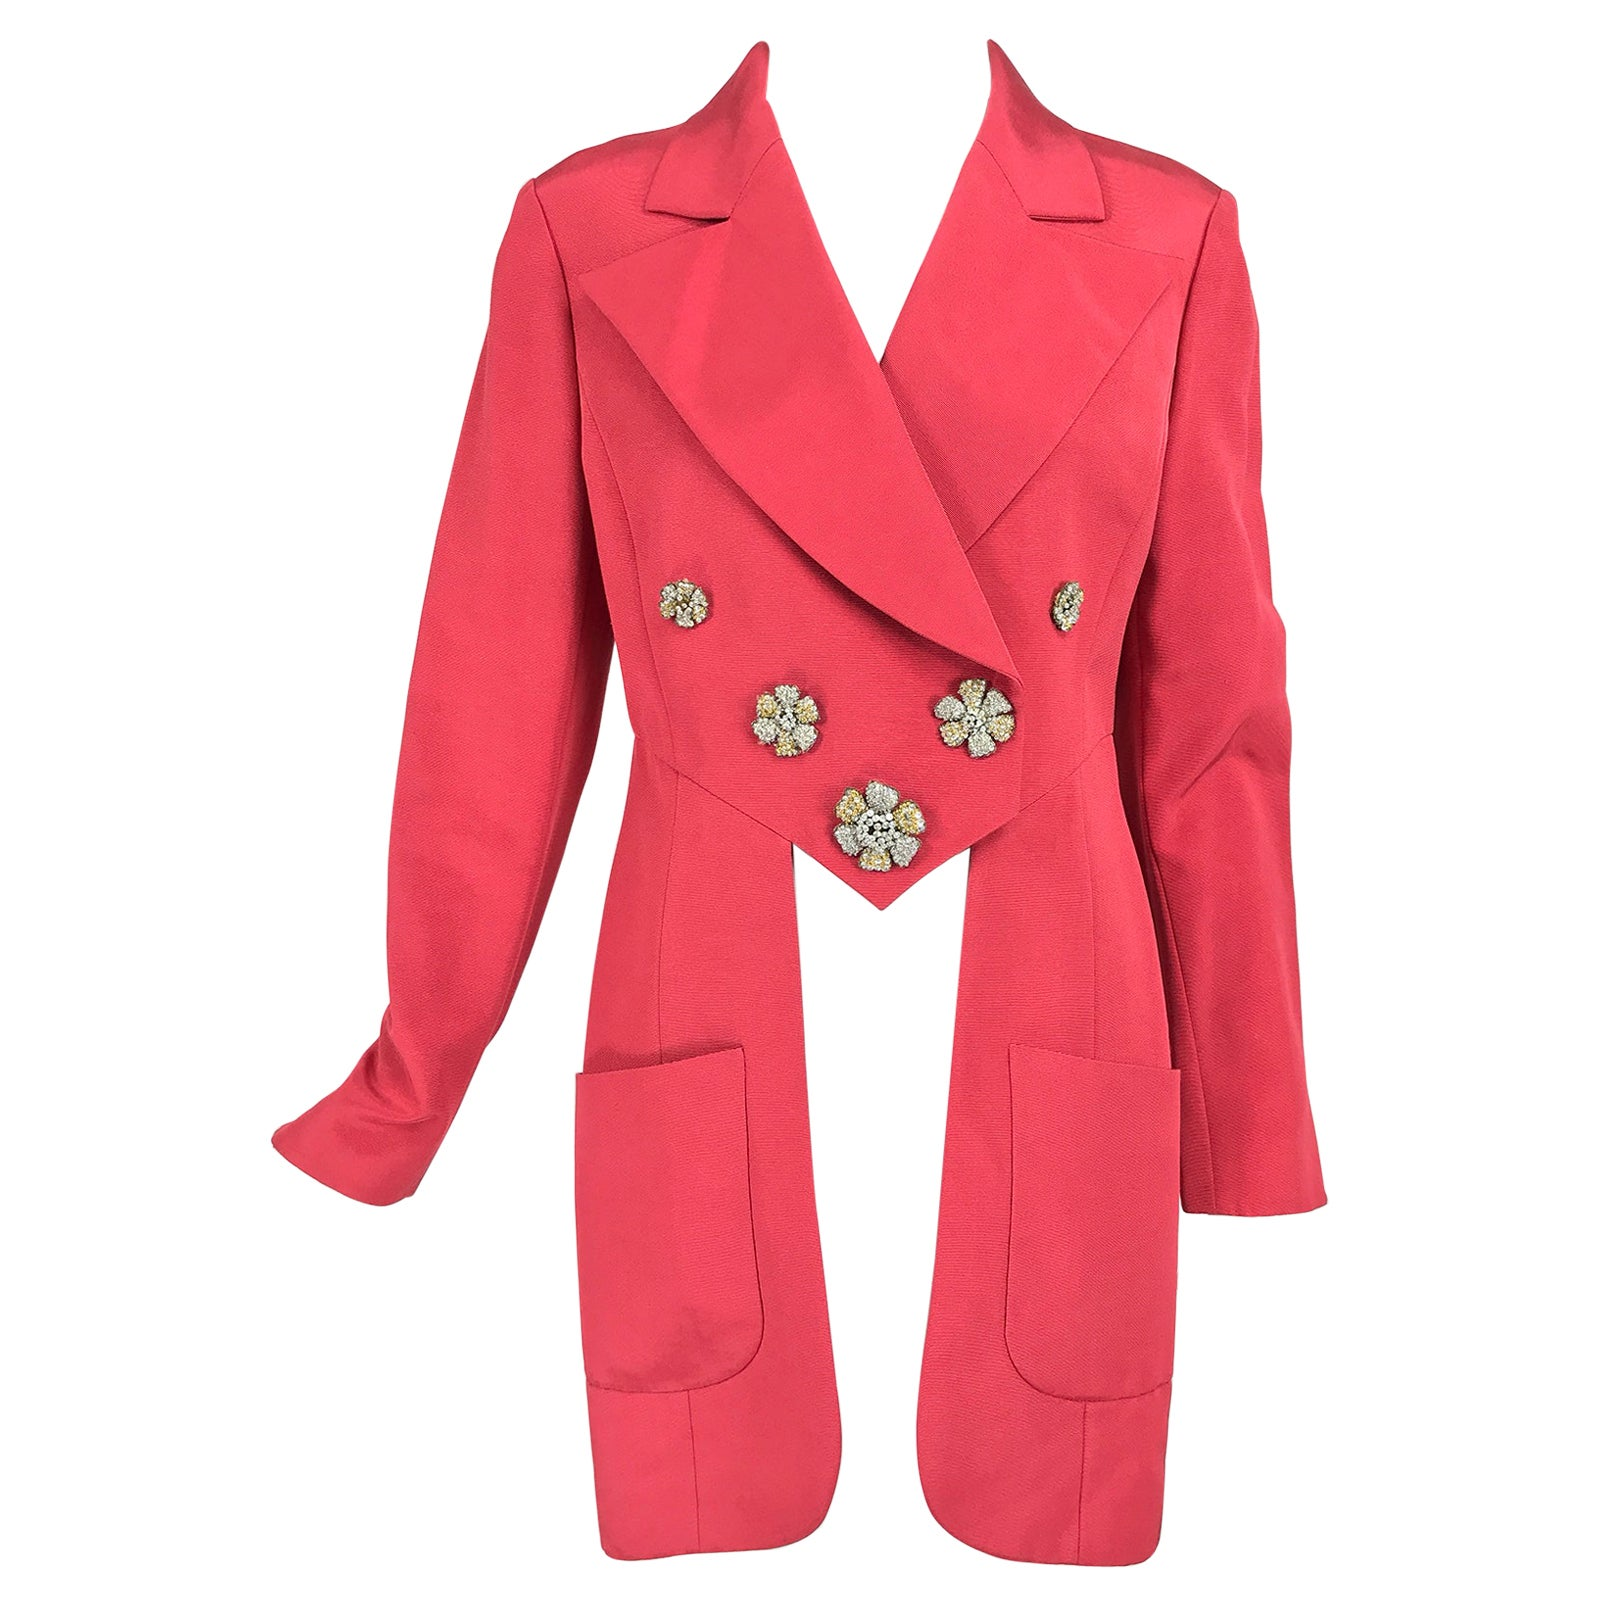 Karl Lagerfeld Coral Red Silk Faille Reddingote Style Coat 1990s